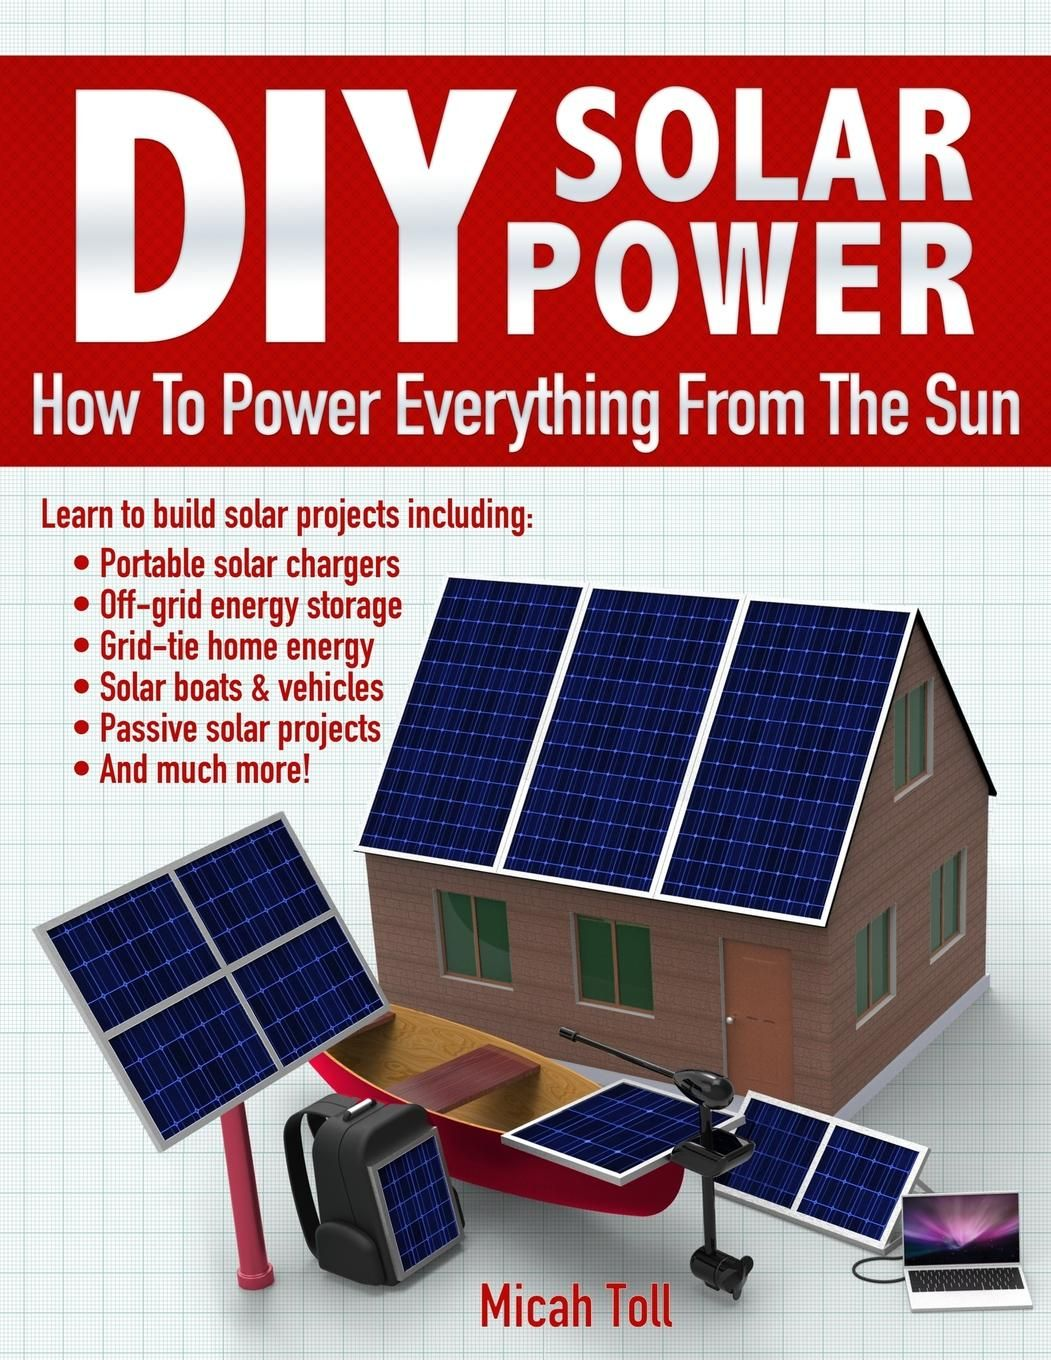 Diy Solar Power How To Power Everything From The Sun Paperback Walmart Com In 2020 Solar Power Diy Solar Projects Diy Solar